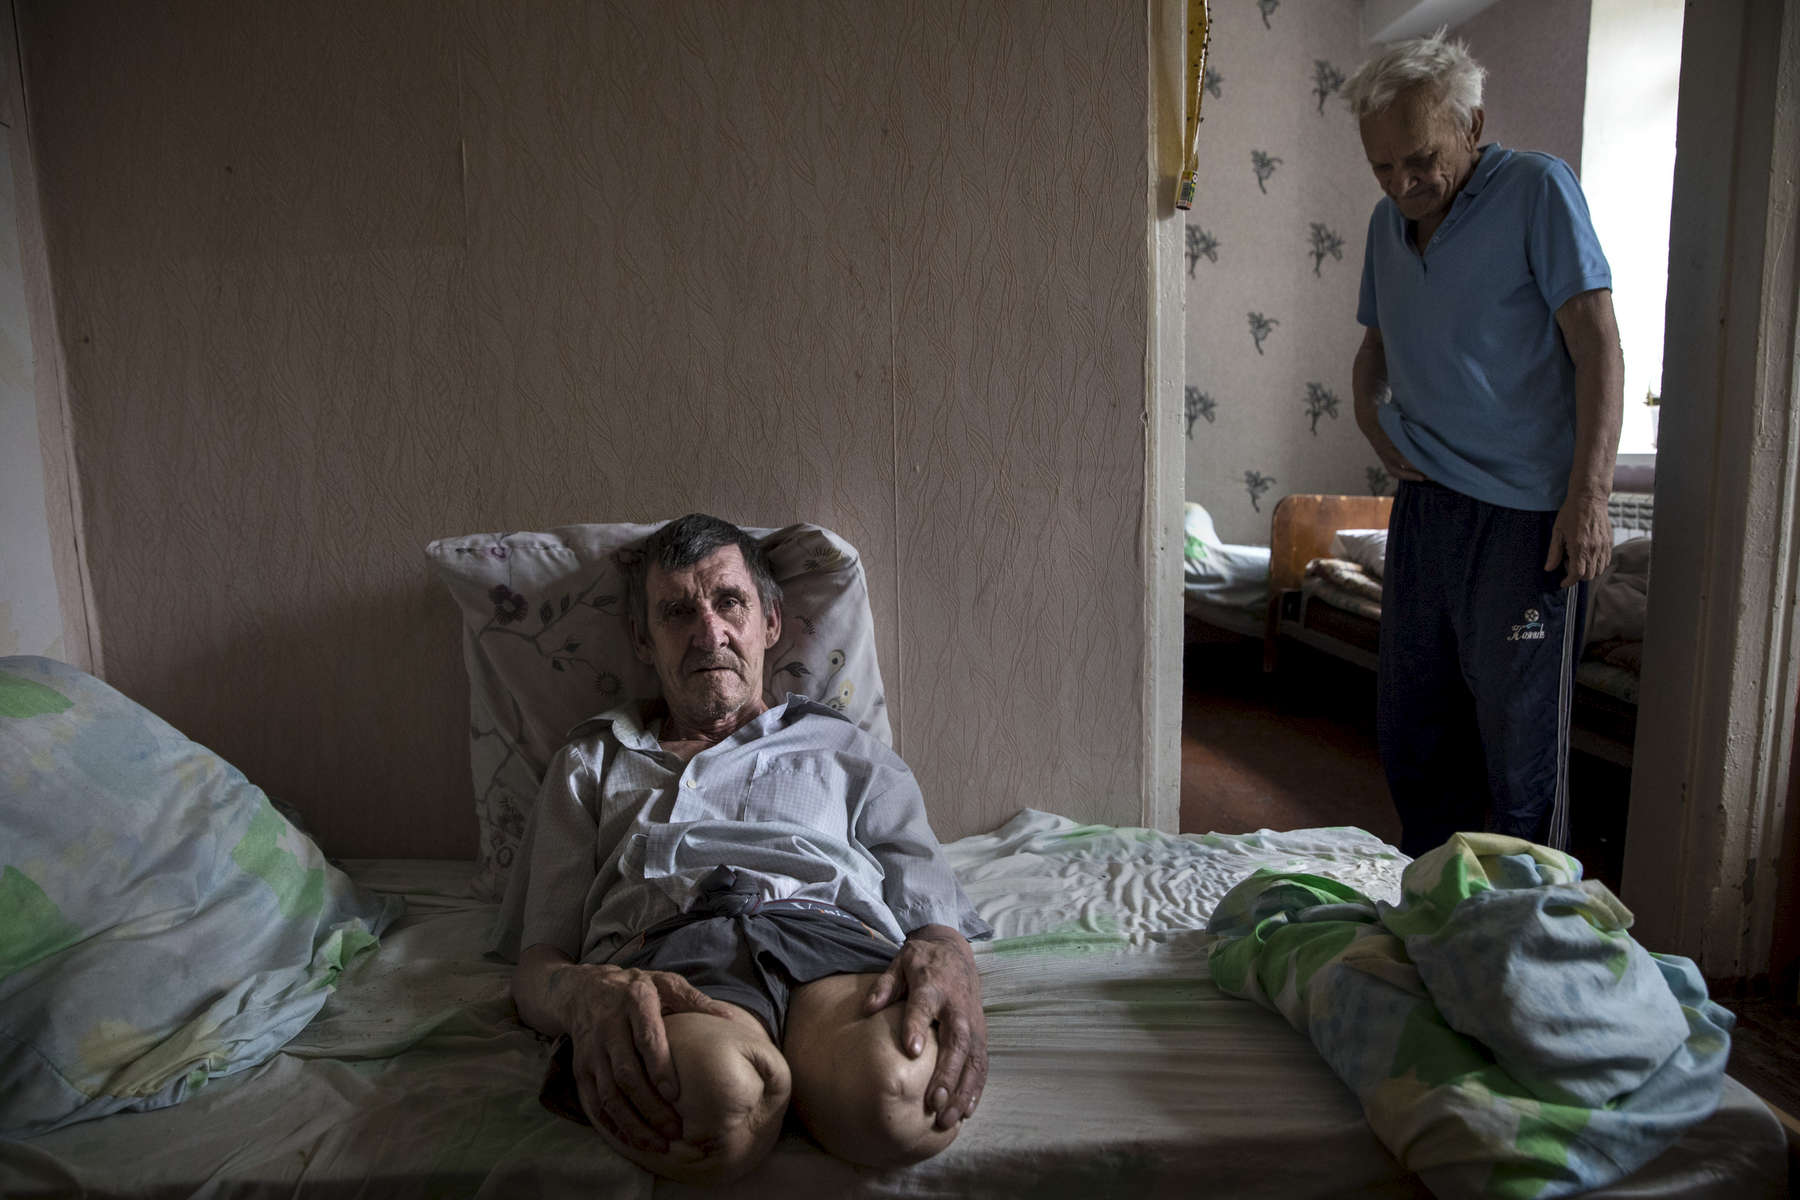 Ivan Ivanovich, age 65, is a double amputee but has no memory of how he lost his legs, he was brought to the Druzhkovka nursing home by healthcare workers, abandoned by his family, his daughter lives in Russia. He used to work as a coal miner. The nursing home facility takes care of many elderly who are left behind, and poverty stricken due to the war.